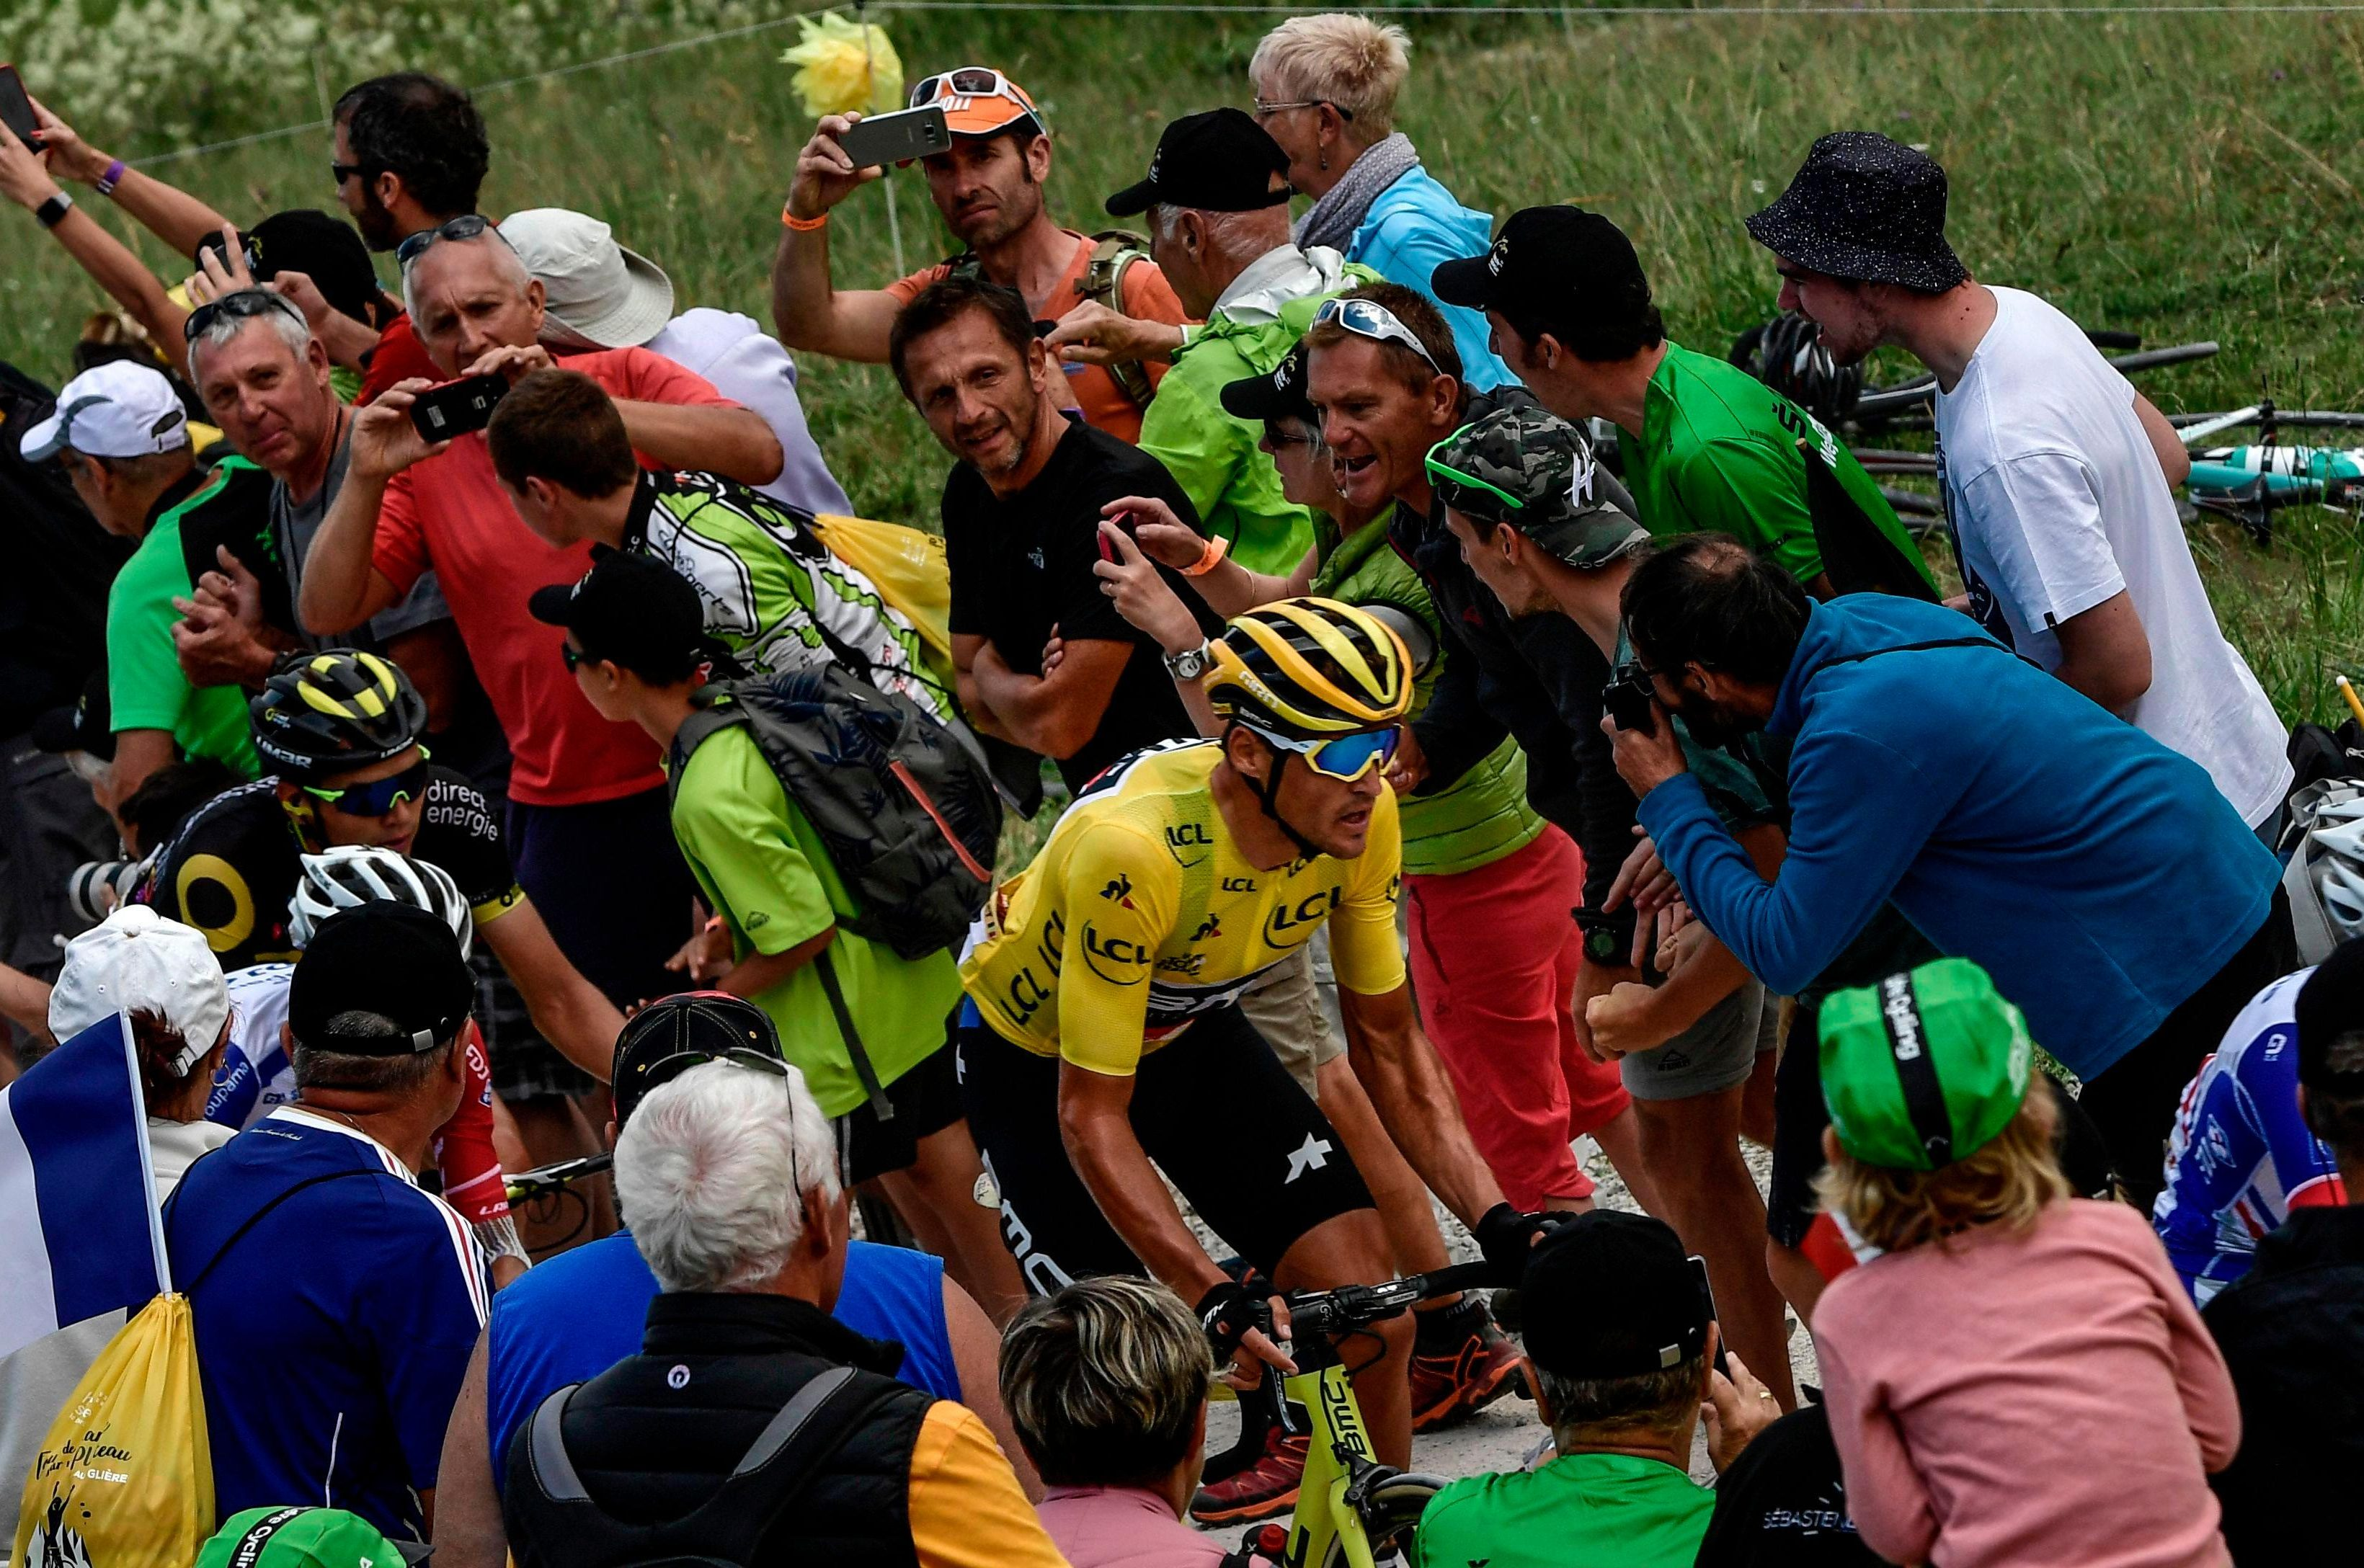 Another dramatic example of closeness of riders and fans as Belgium's Greg Van Avermaet, centre climbs the Plateau des Glieres ascent on the tenth stage